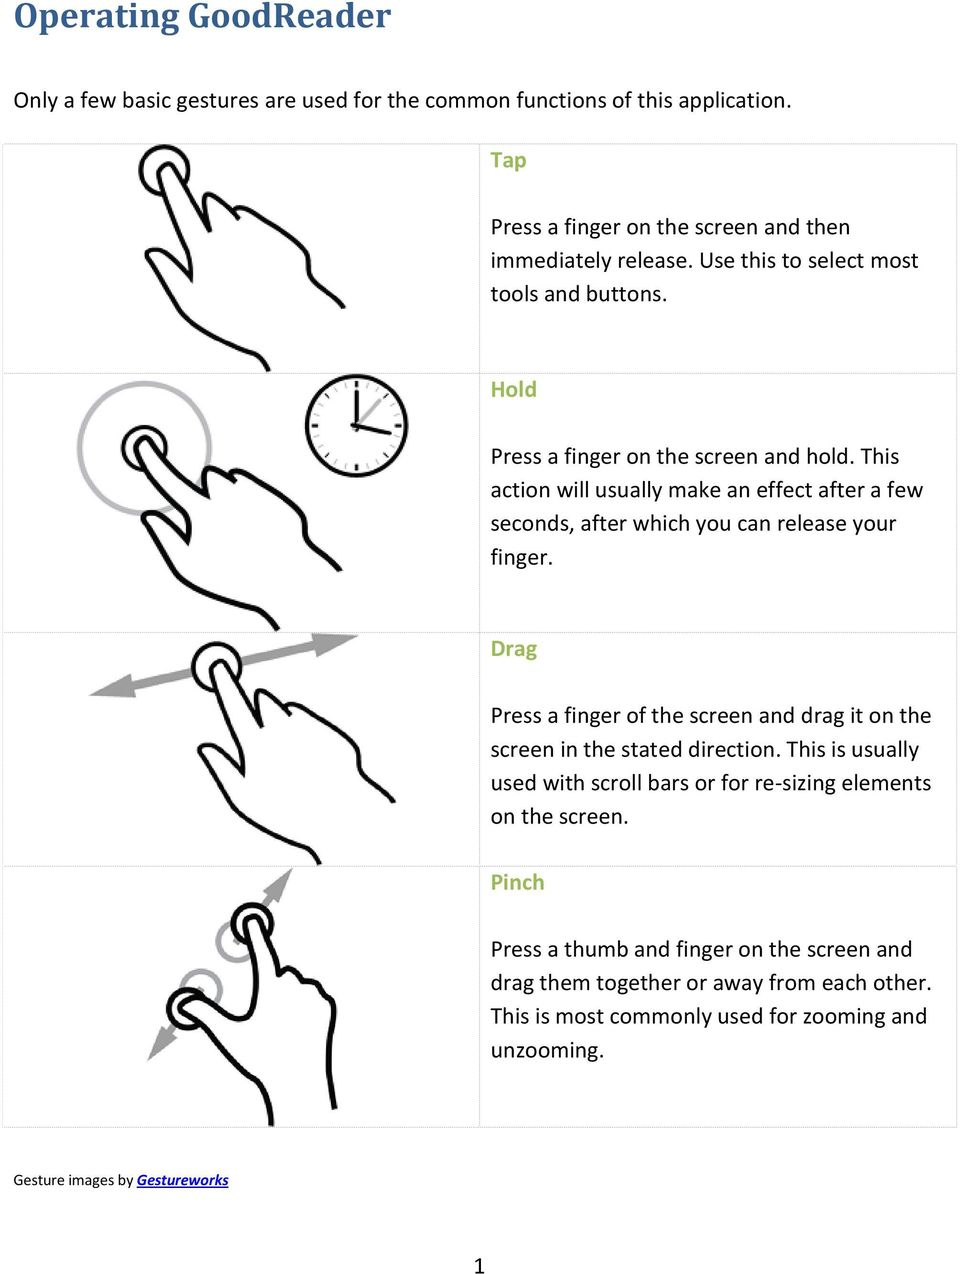 This action will usually make an effect after a few seconds, after which you can release your finger.